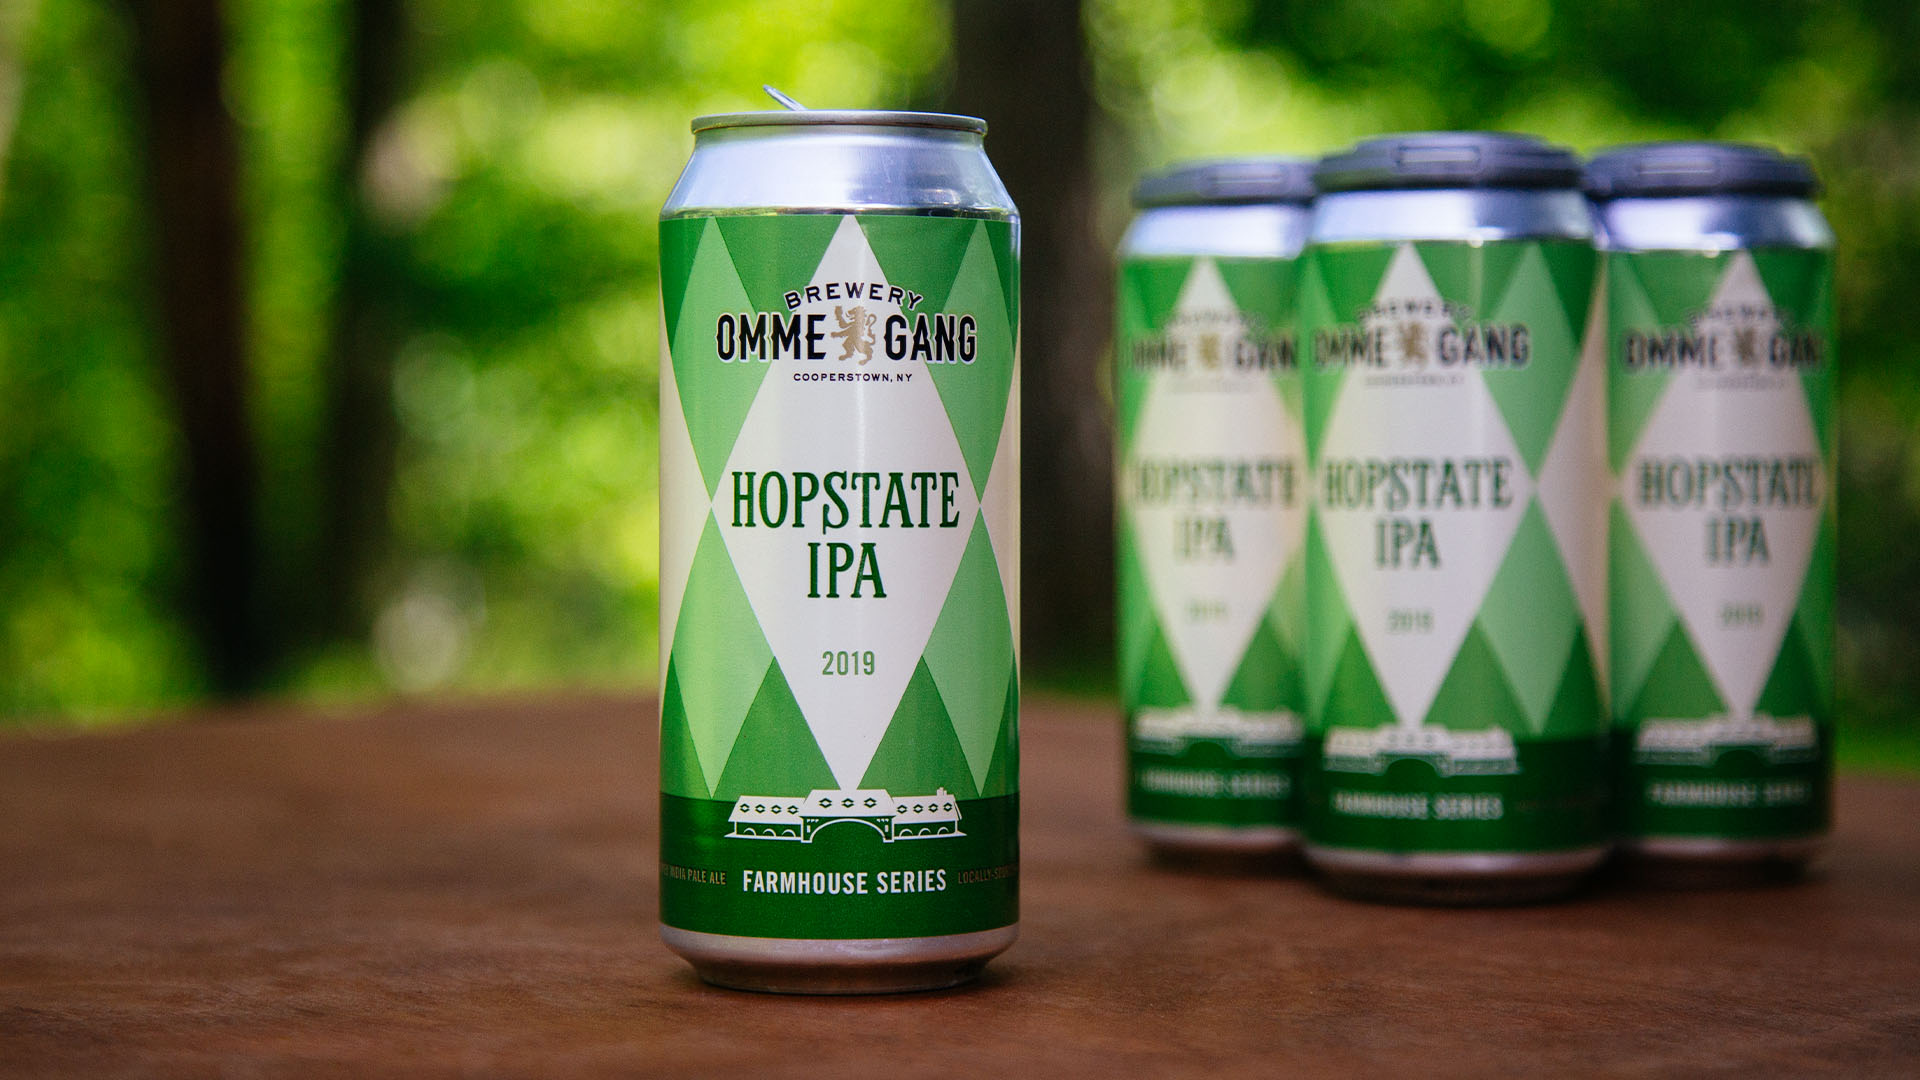 image of Hopstate IPA courtesy of Brewery Ommegang